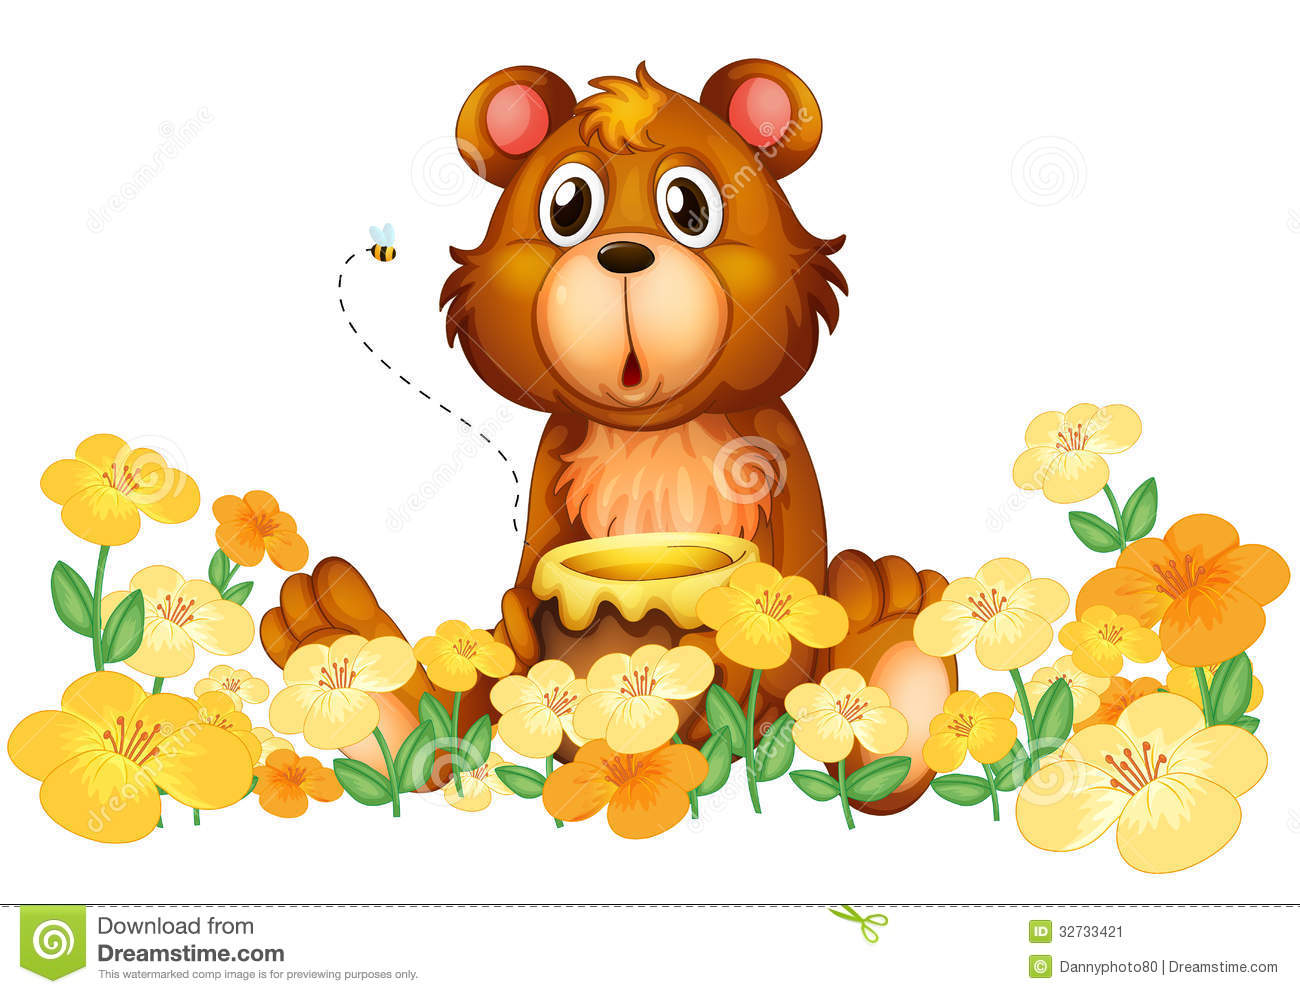 Bear With A Honey At The Garden Stock Image - Image: 32733421